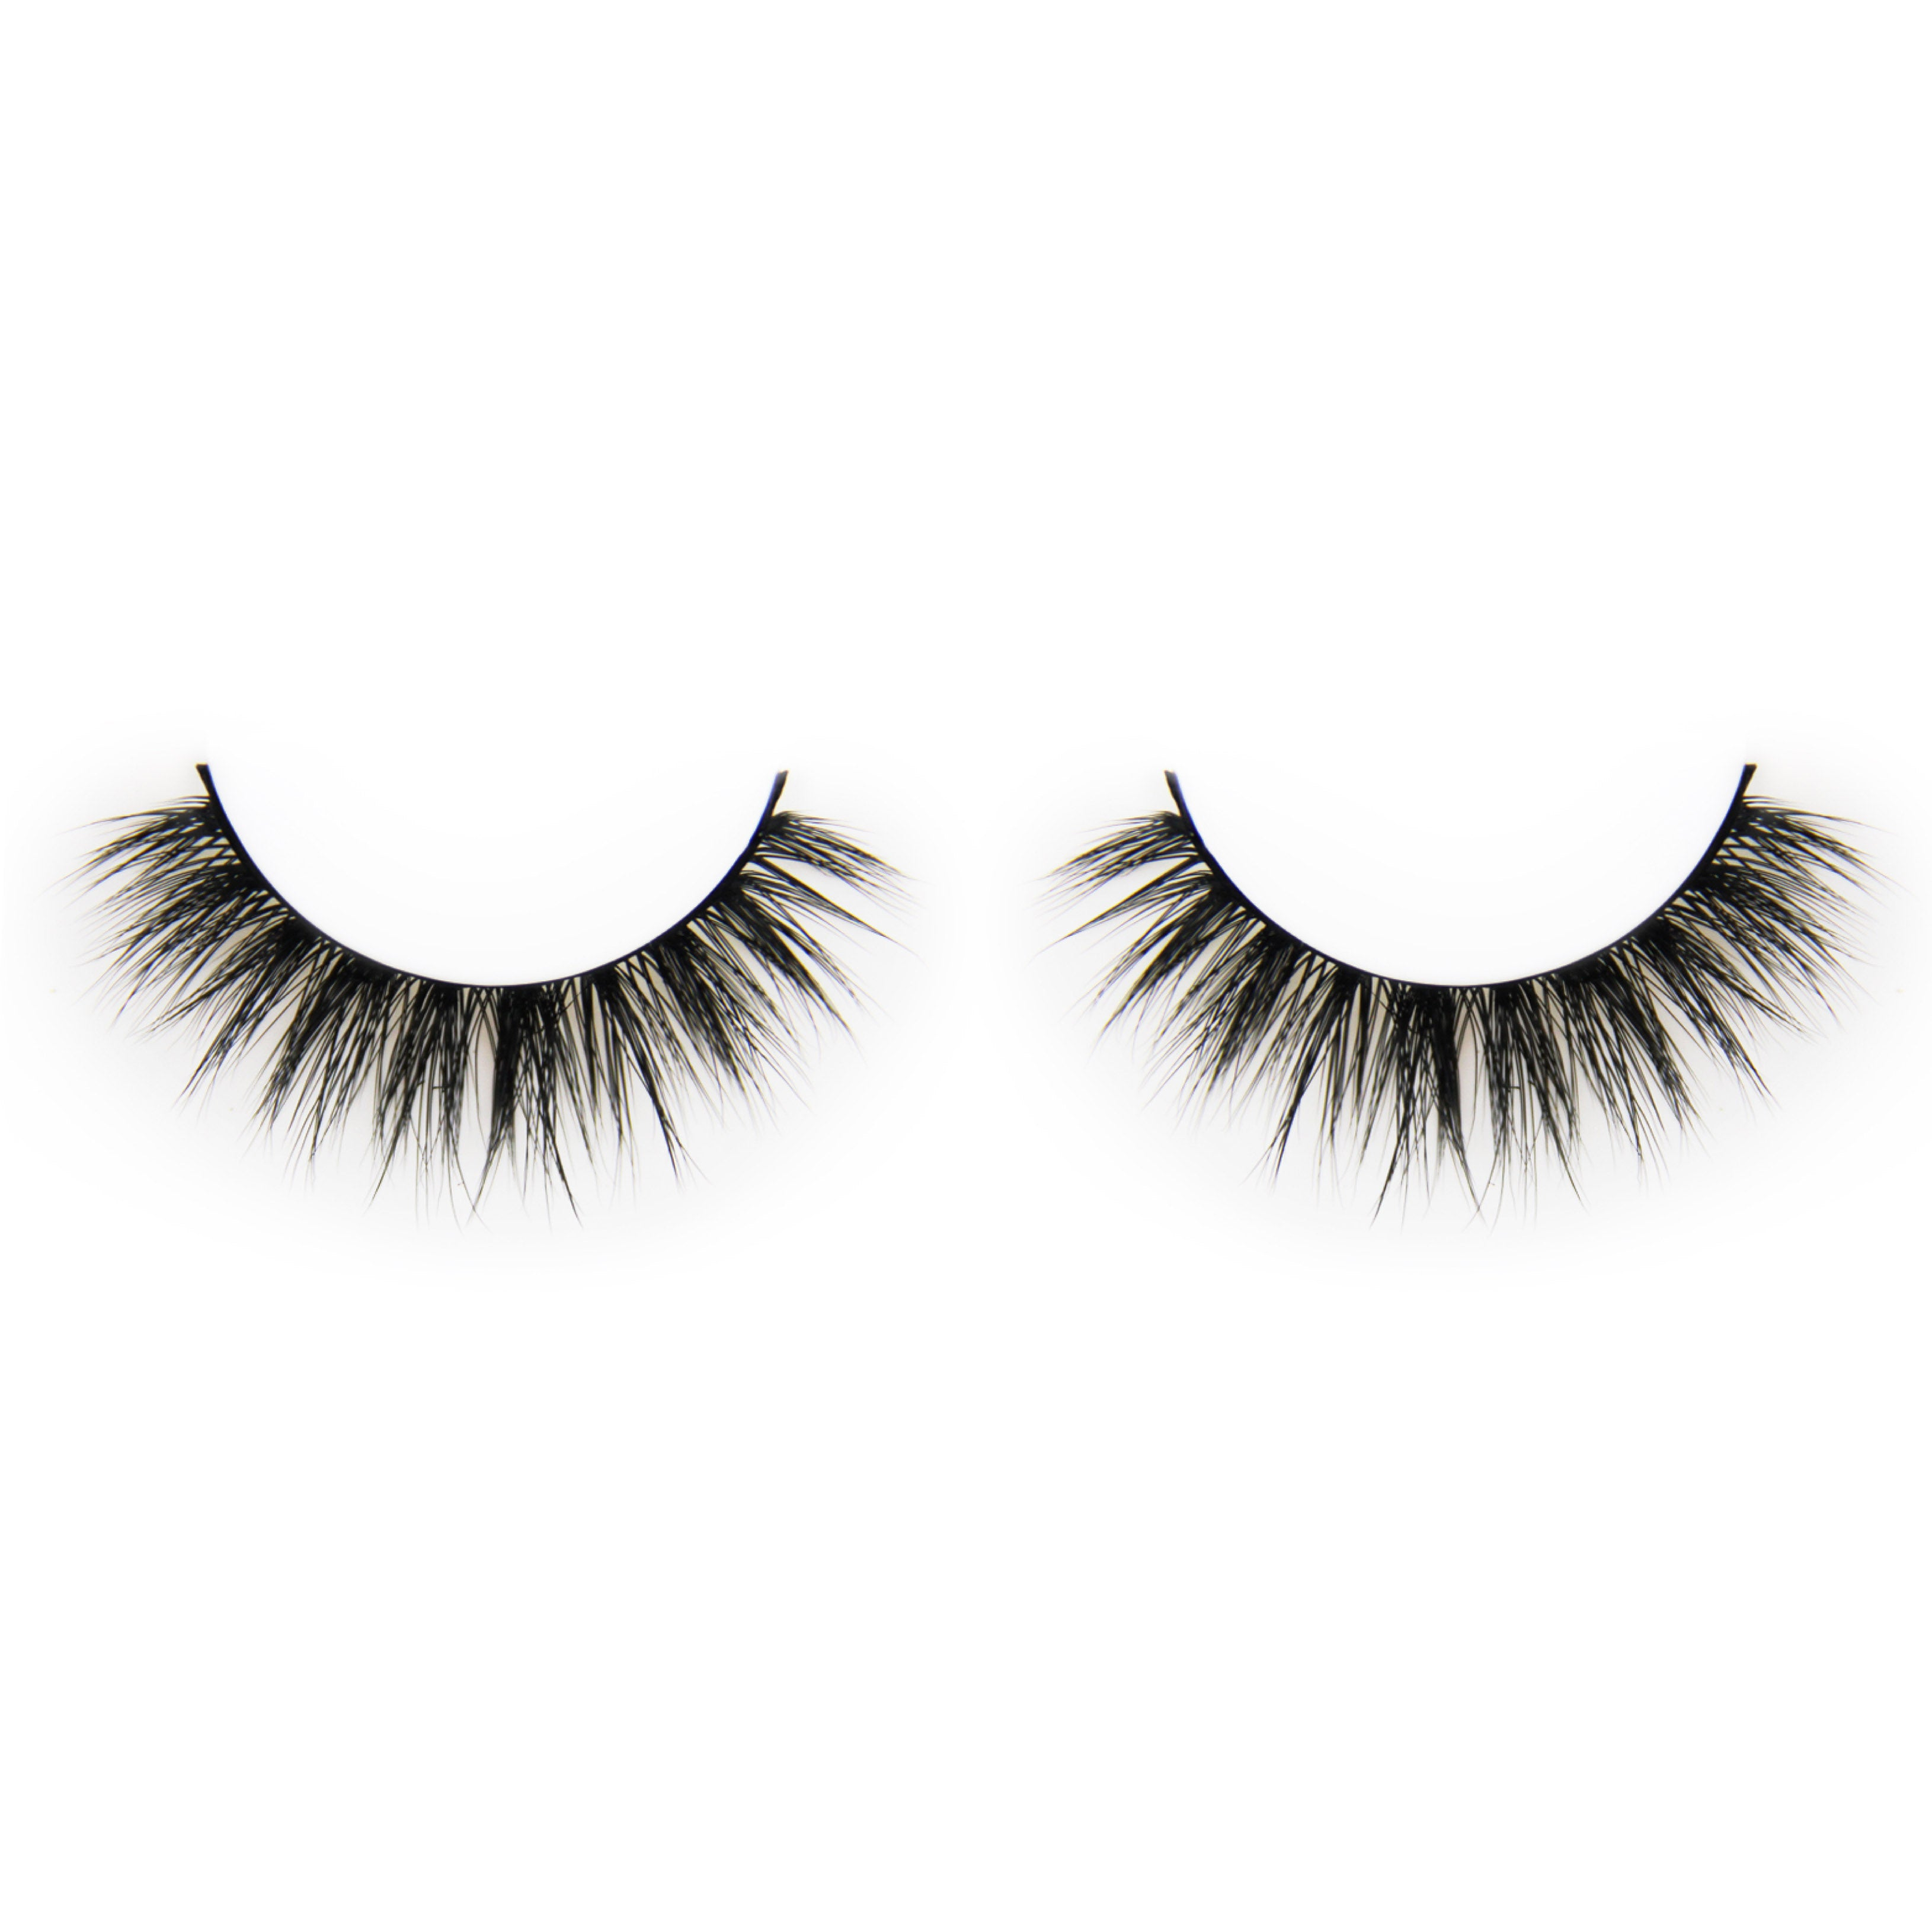 True Luxury Silk Lashes - Money Maker - Green Core Naturals